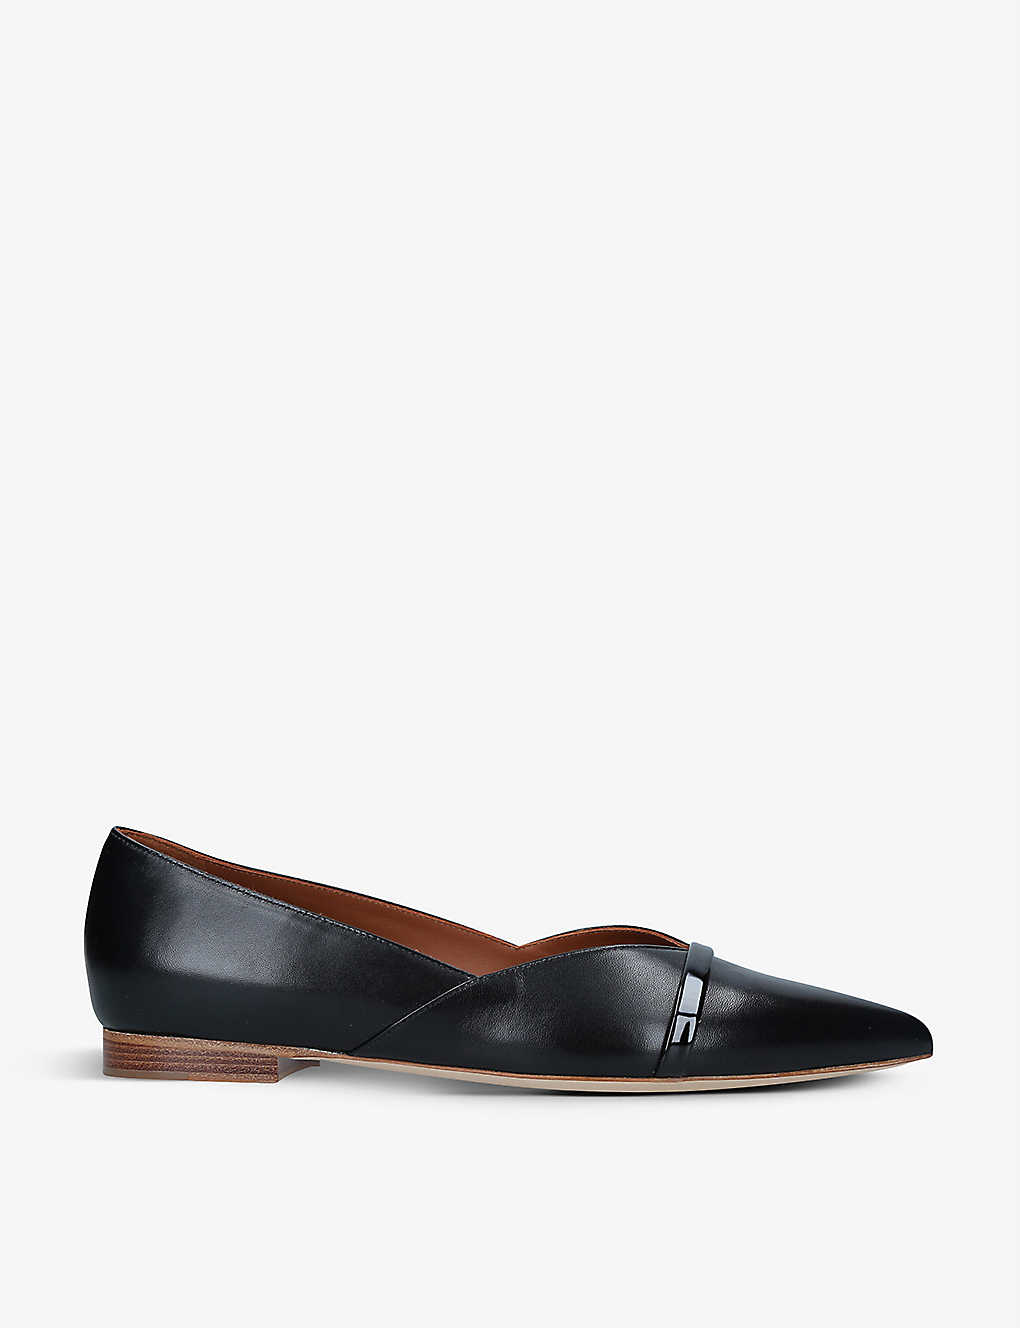 MALONE SOULIERS: Colette pointed-toe leather ballet flats